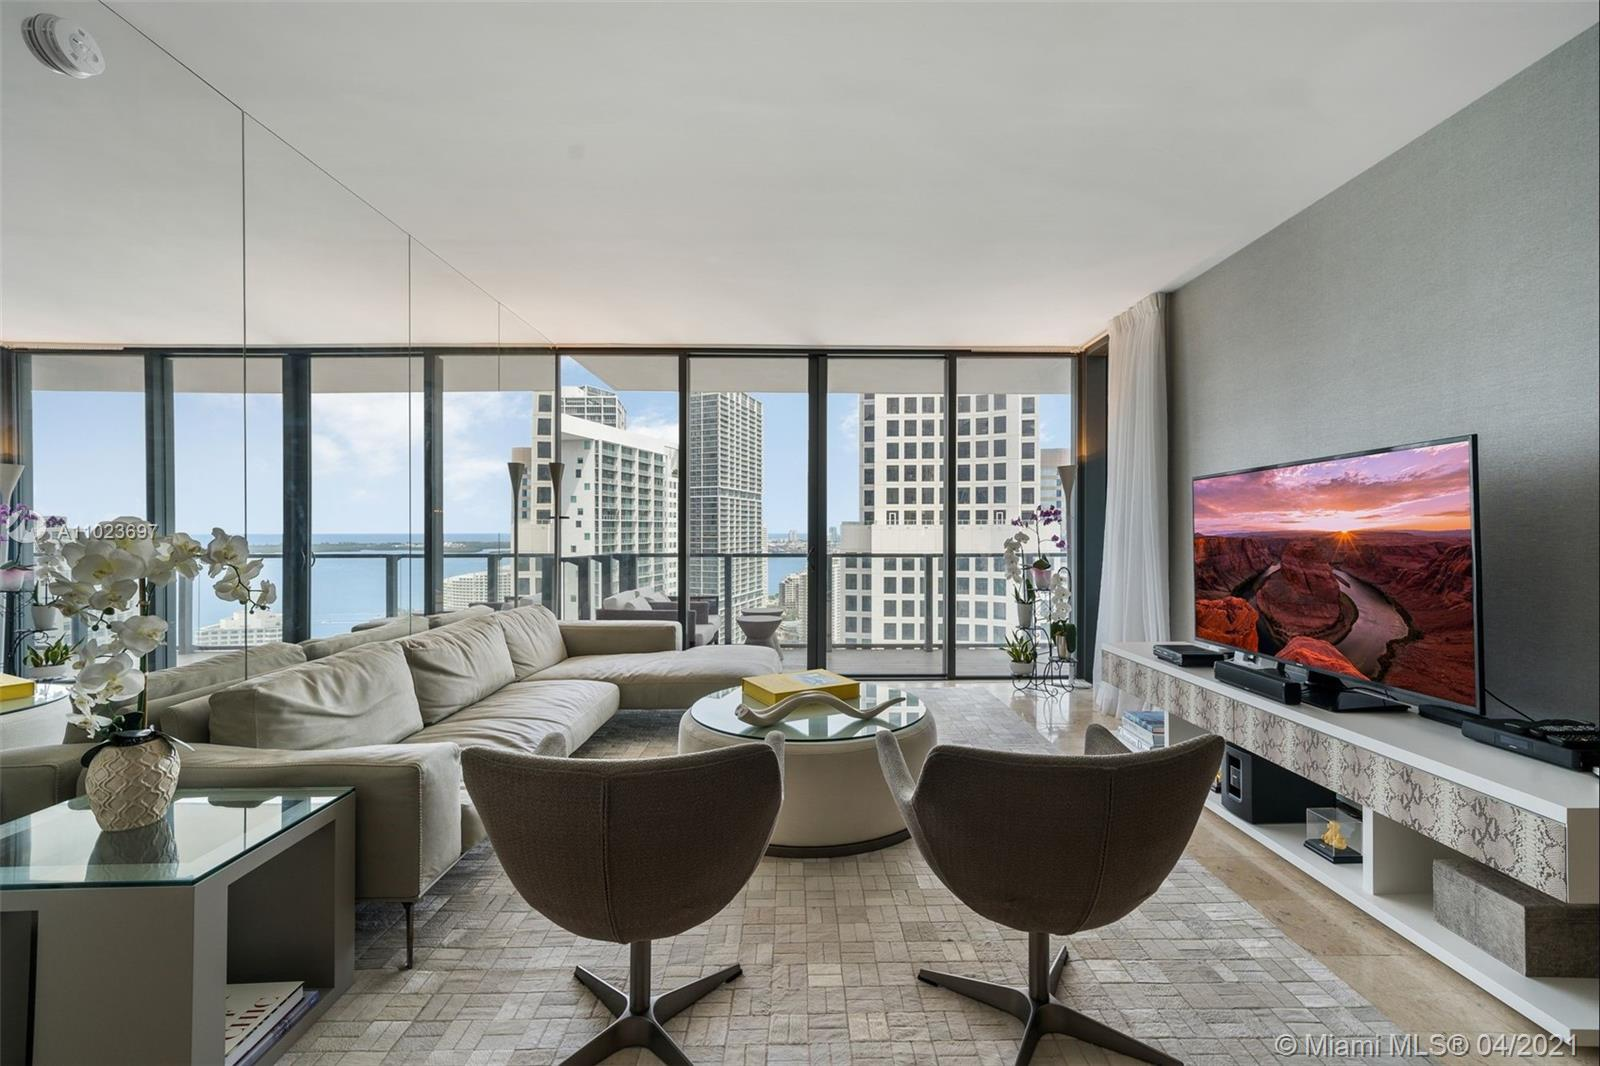 Live Limitlessly at this stylish furnished model unit at Reach Brickell City Centre - a spacious interior unit with floor to ceiling windows and dazzling city and bay views. Enjoy a morning coffee beneath a picturesque city sunrise on your expansive balcony, or entertain friends in this open-concept space that seamlessly blends indoor and outdoor living. This sophisticated, stylish condo features imported marble flooring, sparkling quartz-stone countertops, a relaxing jacuzzi, premium Bosch appliances, and sleek Danze fixtures. Located in Brickell's epicenter for swanky shopping, delicious dining and exciting entertainment, your home will literally be steps from Brickell's most popular destinations, while still promising a calm and tranquil lifestyle.